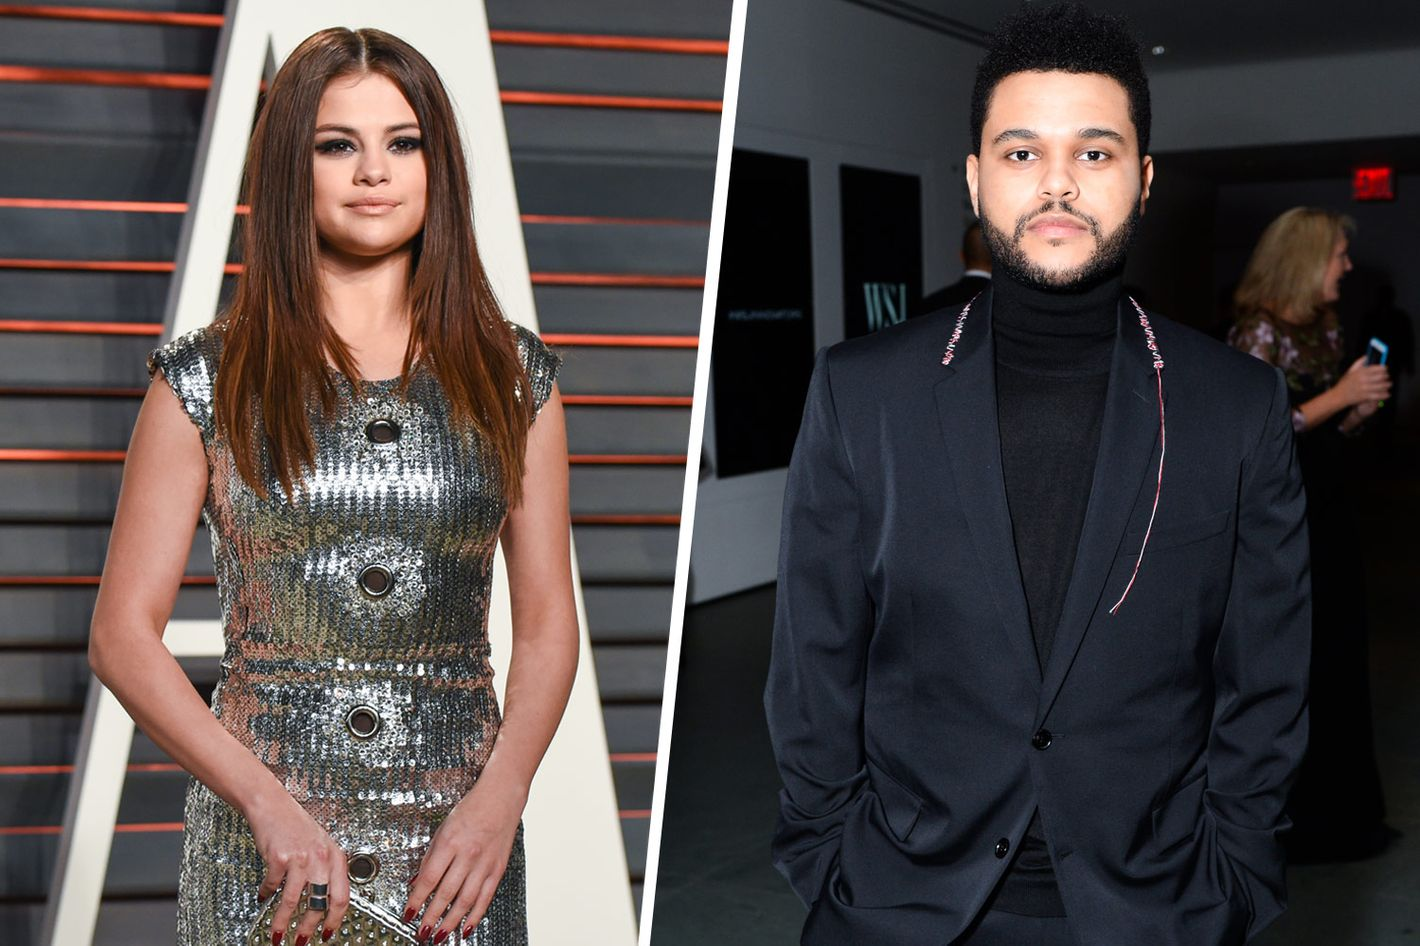 Selena news latest and weeknd The Truth